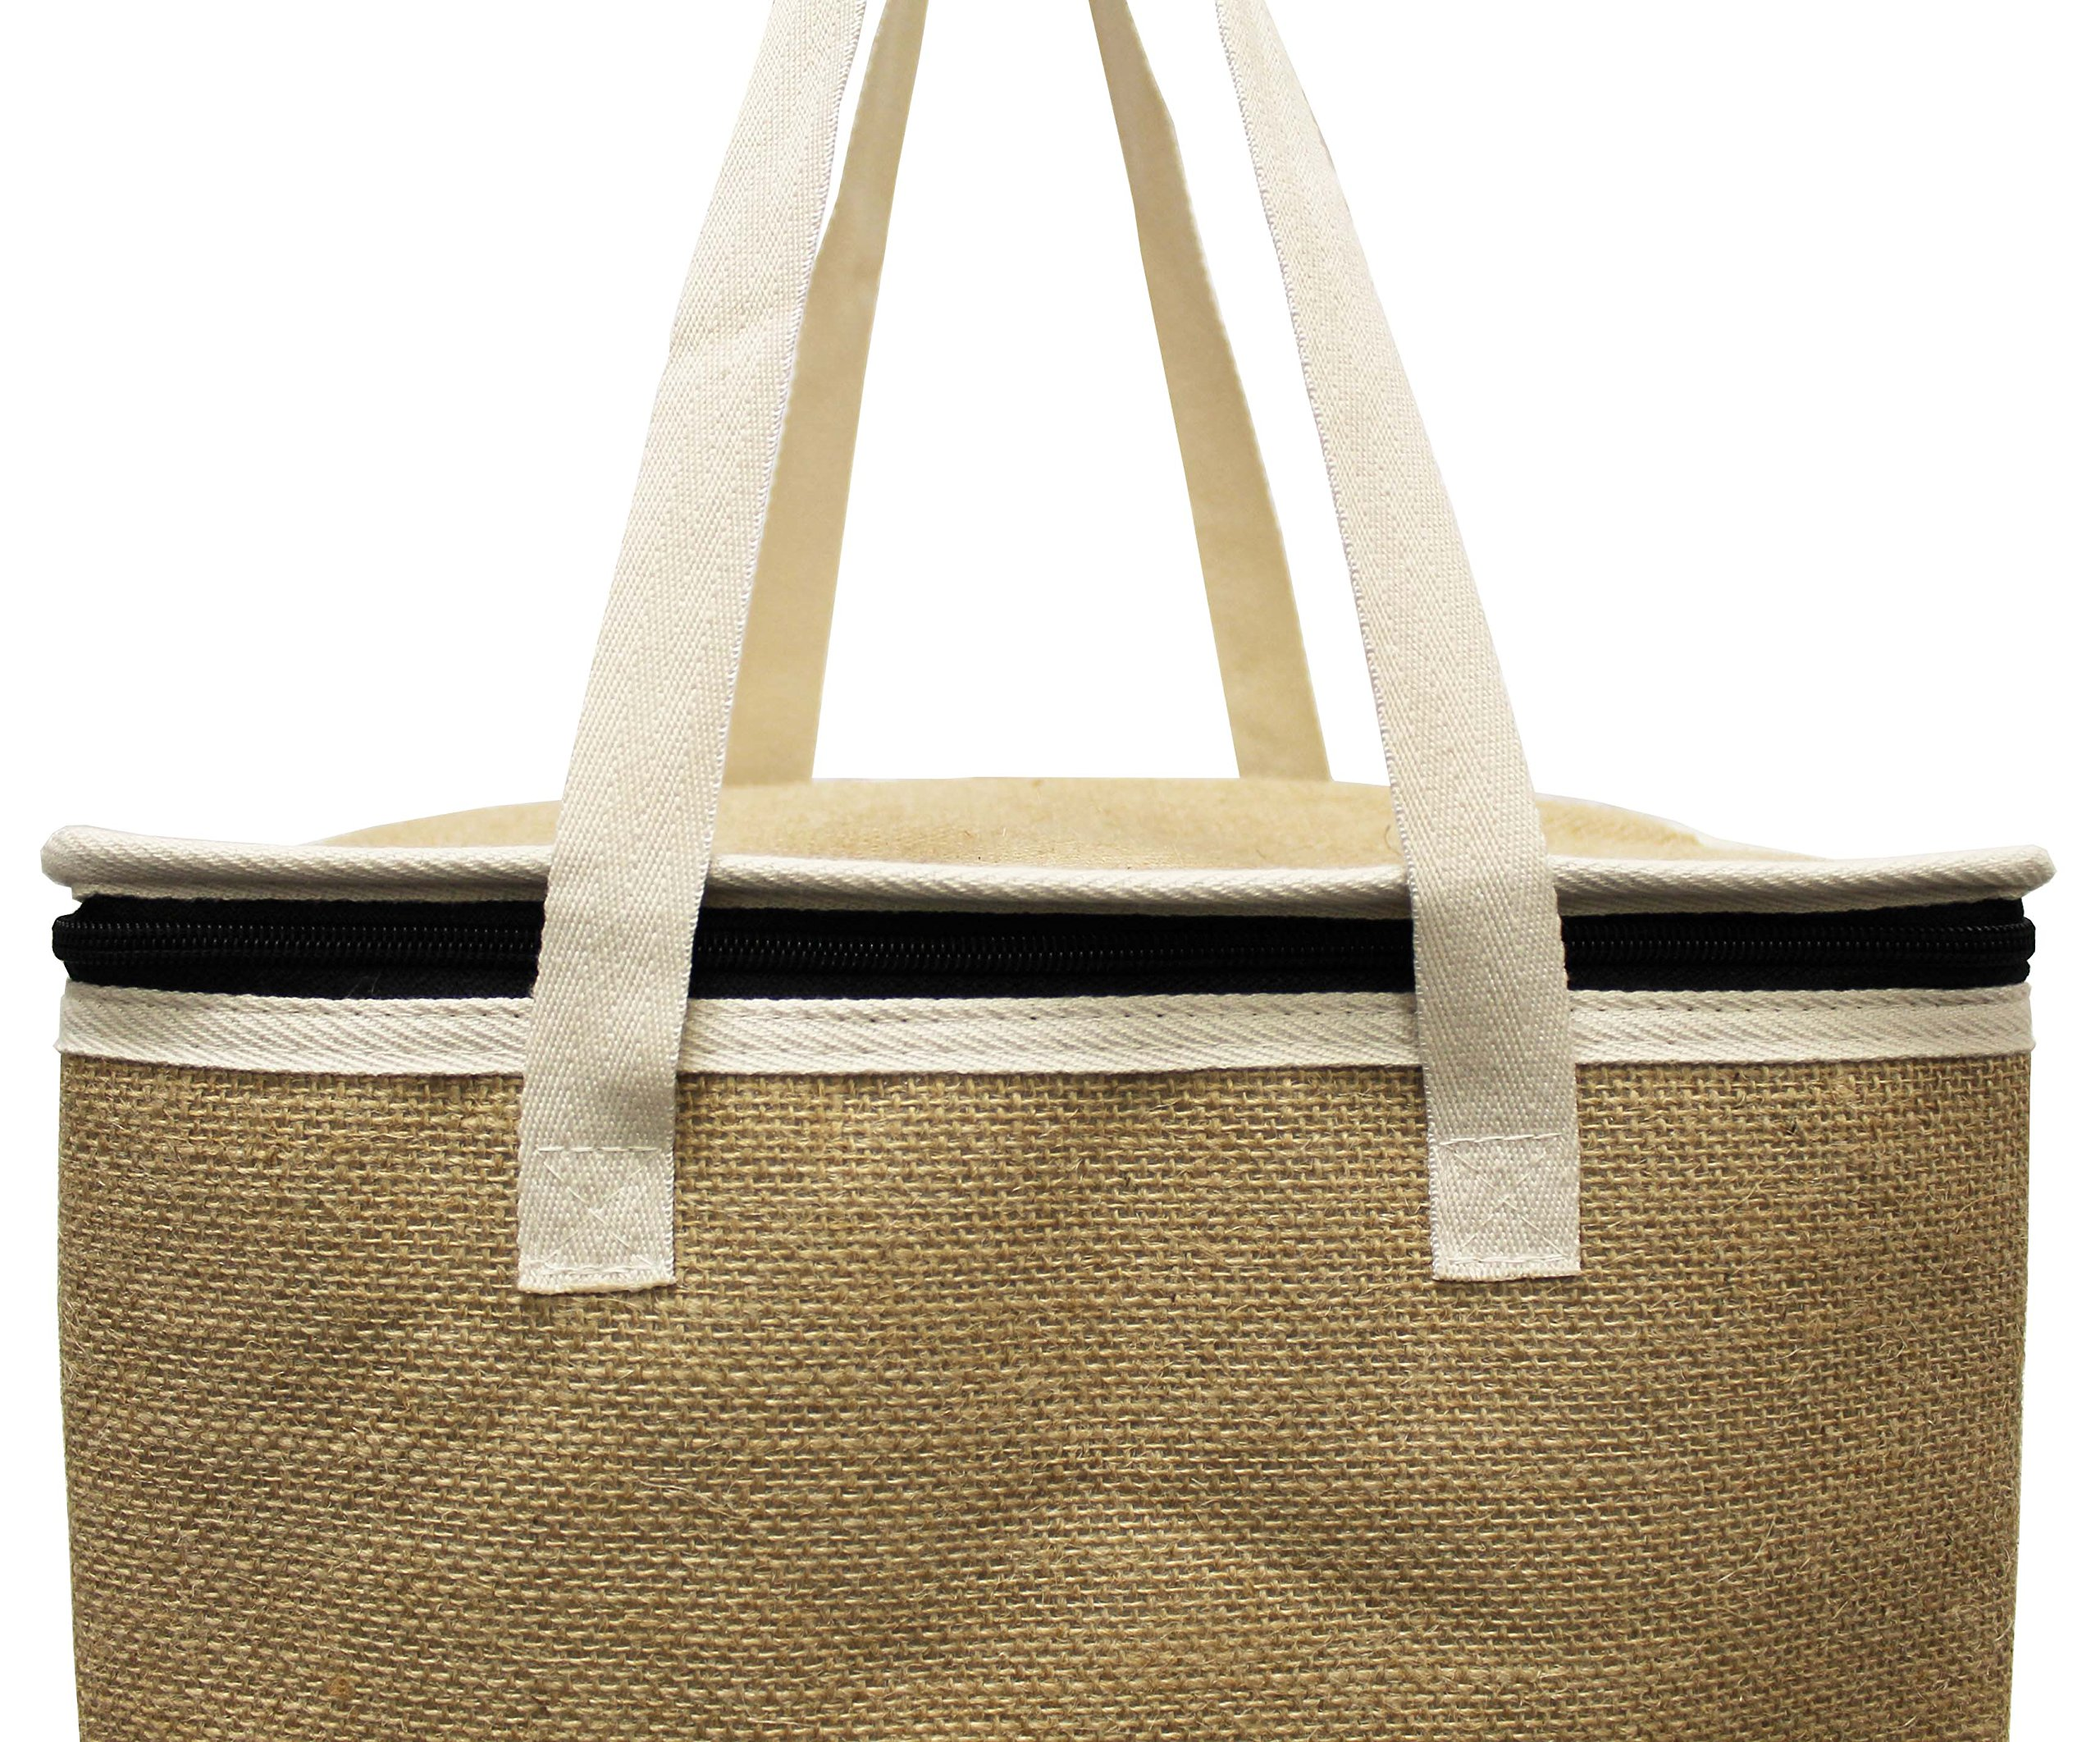 Earthwise Large Jute Insulated Shopping Grocery Bags w ZIPPER TOP LID Thermal Cooler Tote KEEPS FOOD HOT OR COLD (Set of 2) by Earthwise (Image #1)